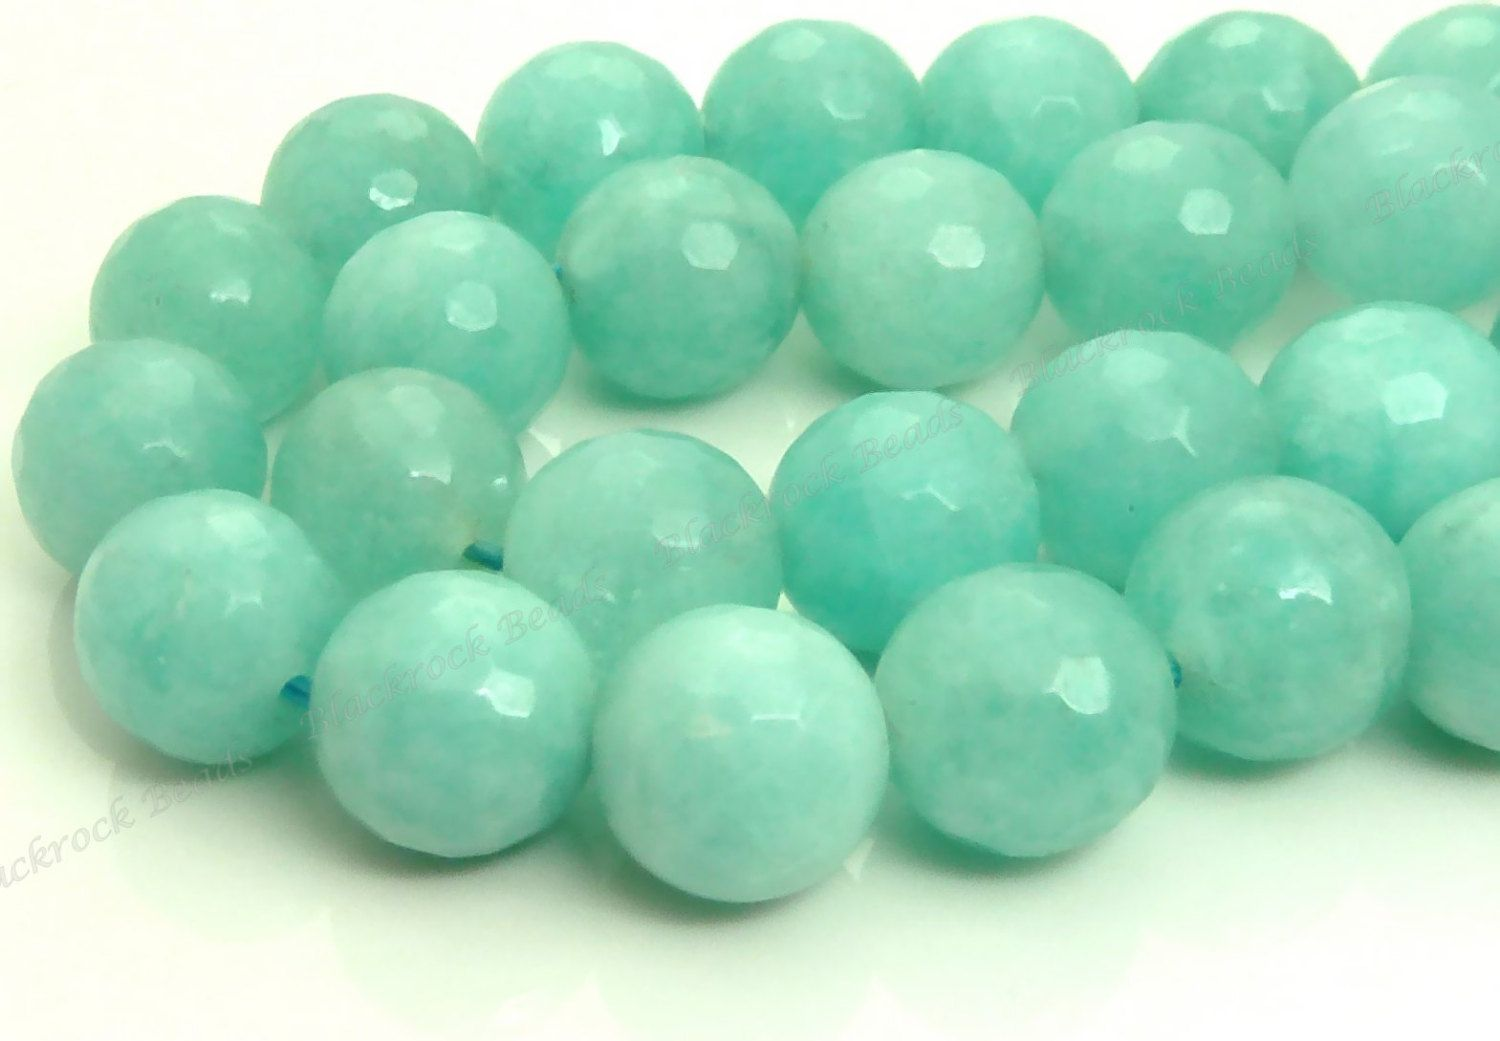 10mm Seafoam Green Jade Faceted Gemstone Beads - 15.5 Inch Strand - BF24 by BlackrockBeads on Etsy